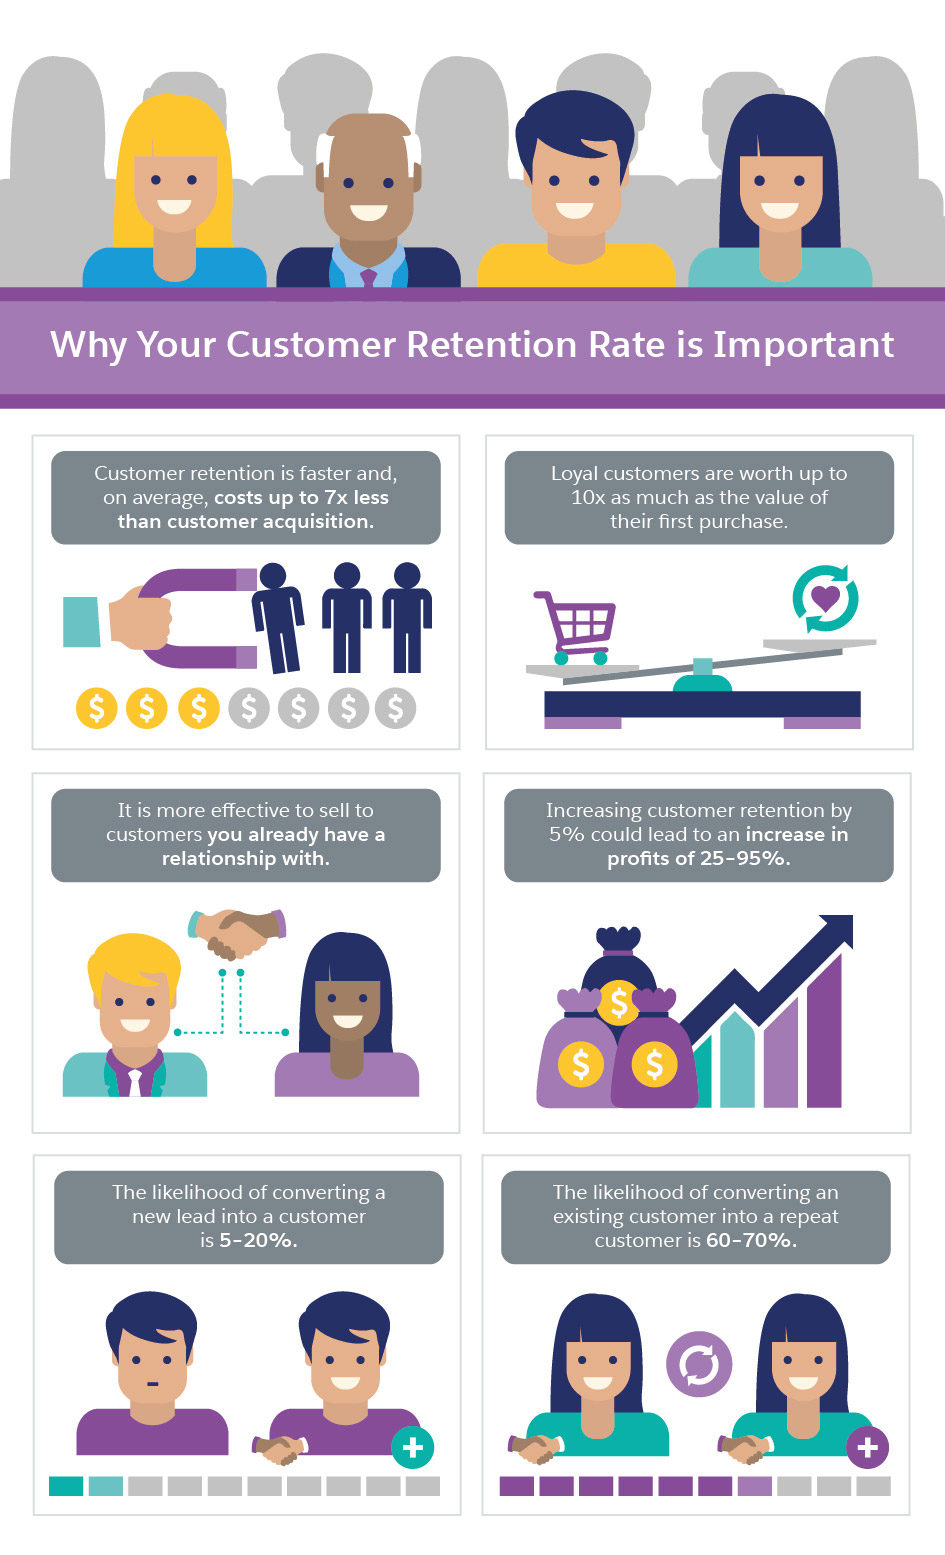 Why Your Customer Retention Rate is so Important